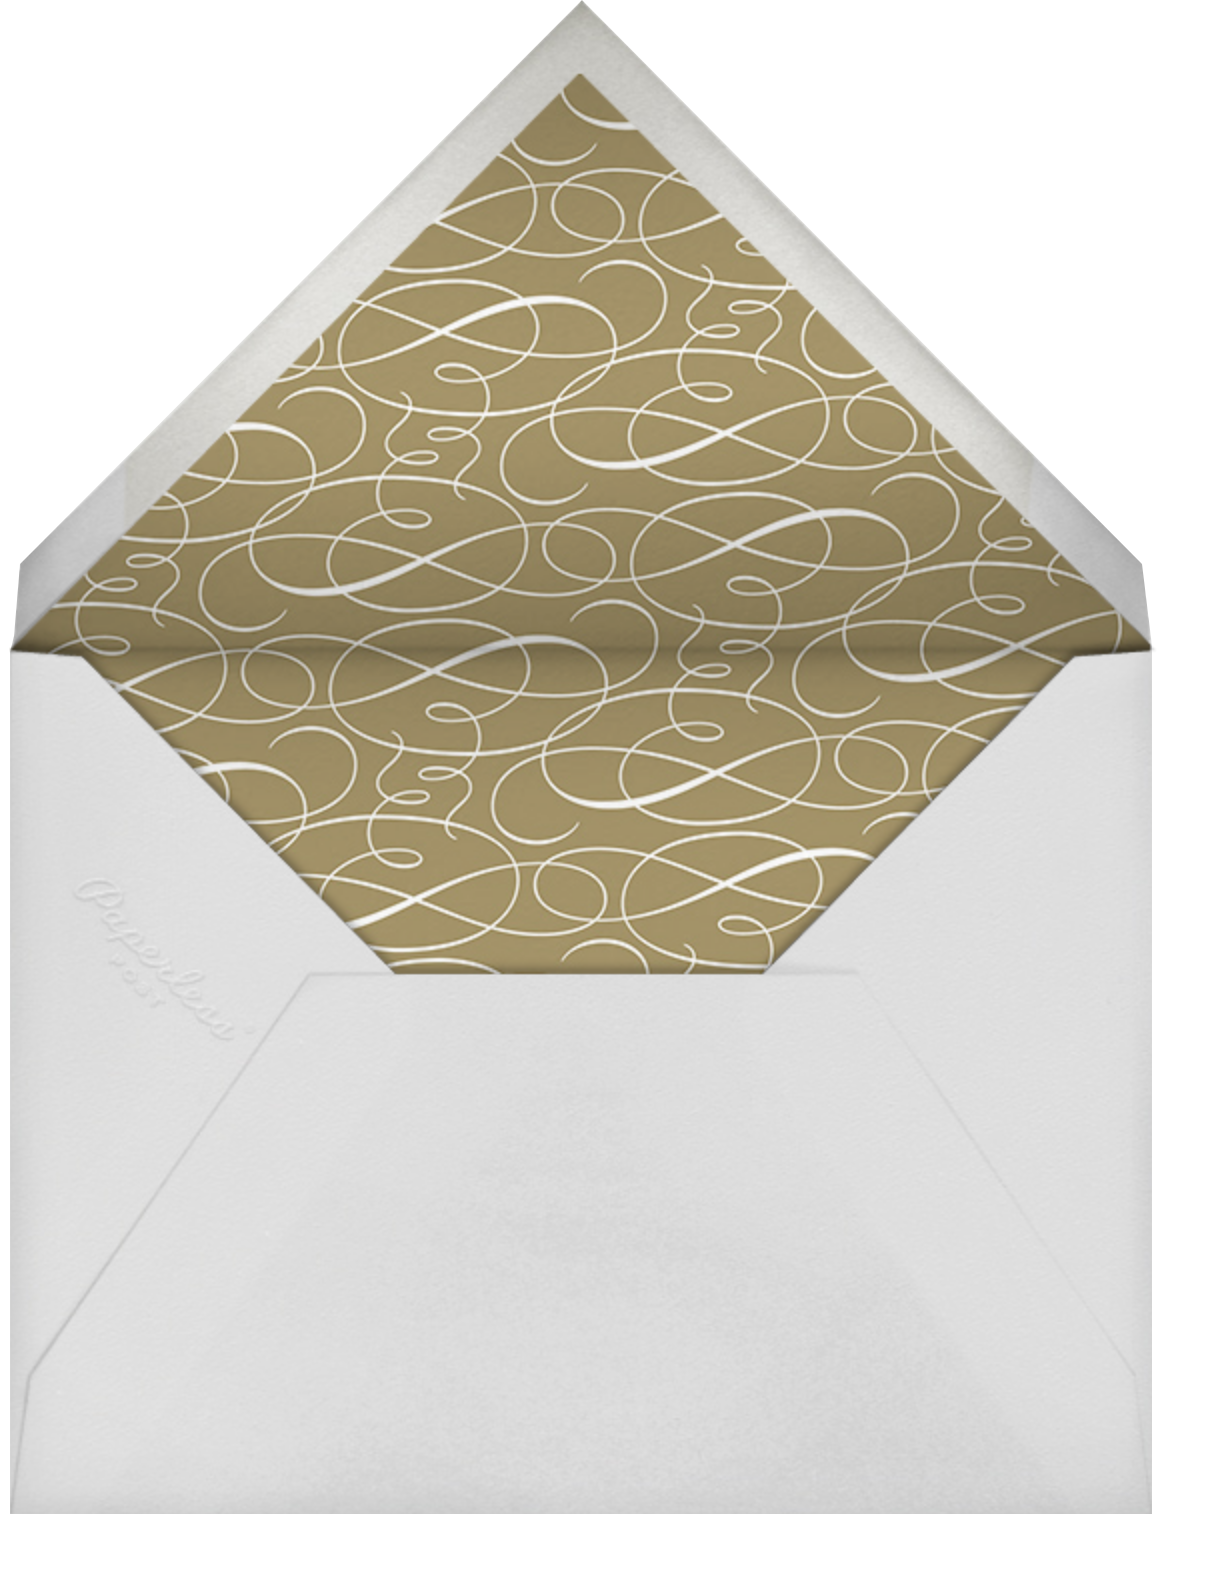 Transmission - Paperless Post - Ticketed events - envelope back